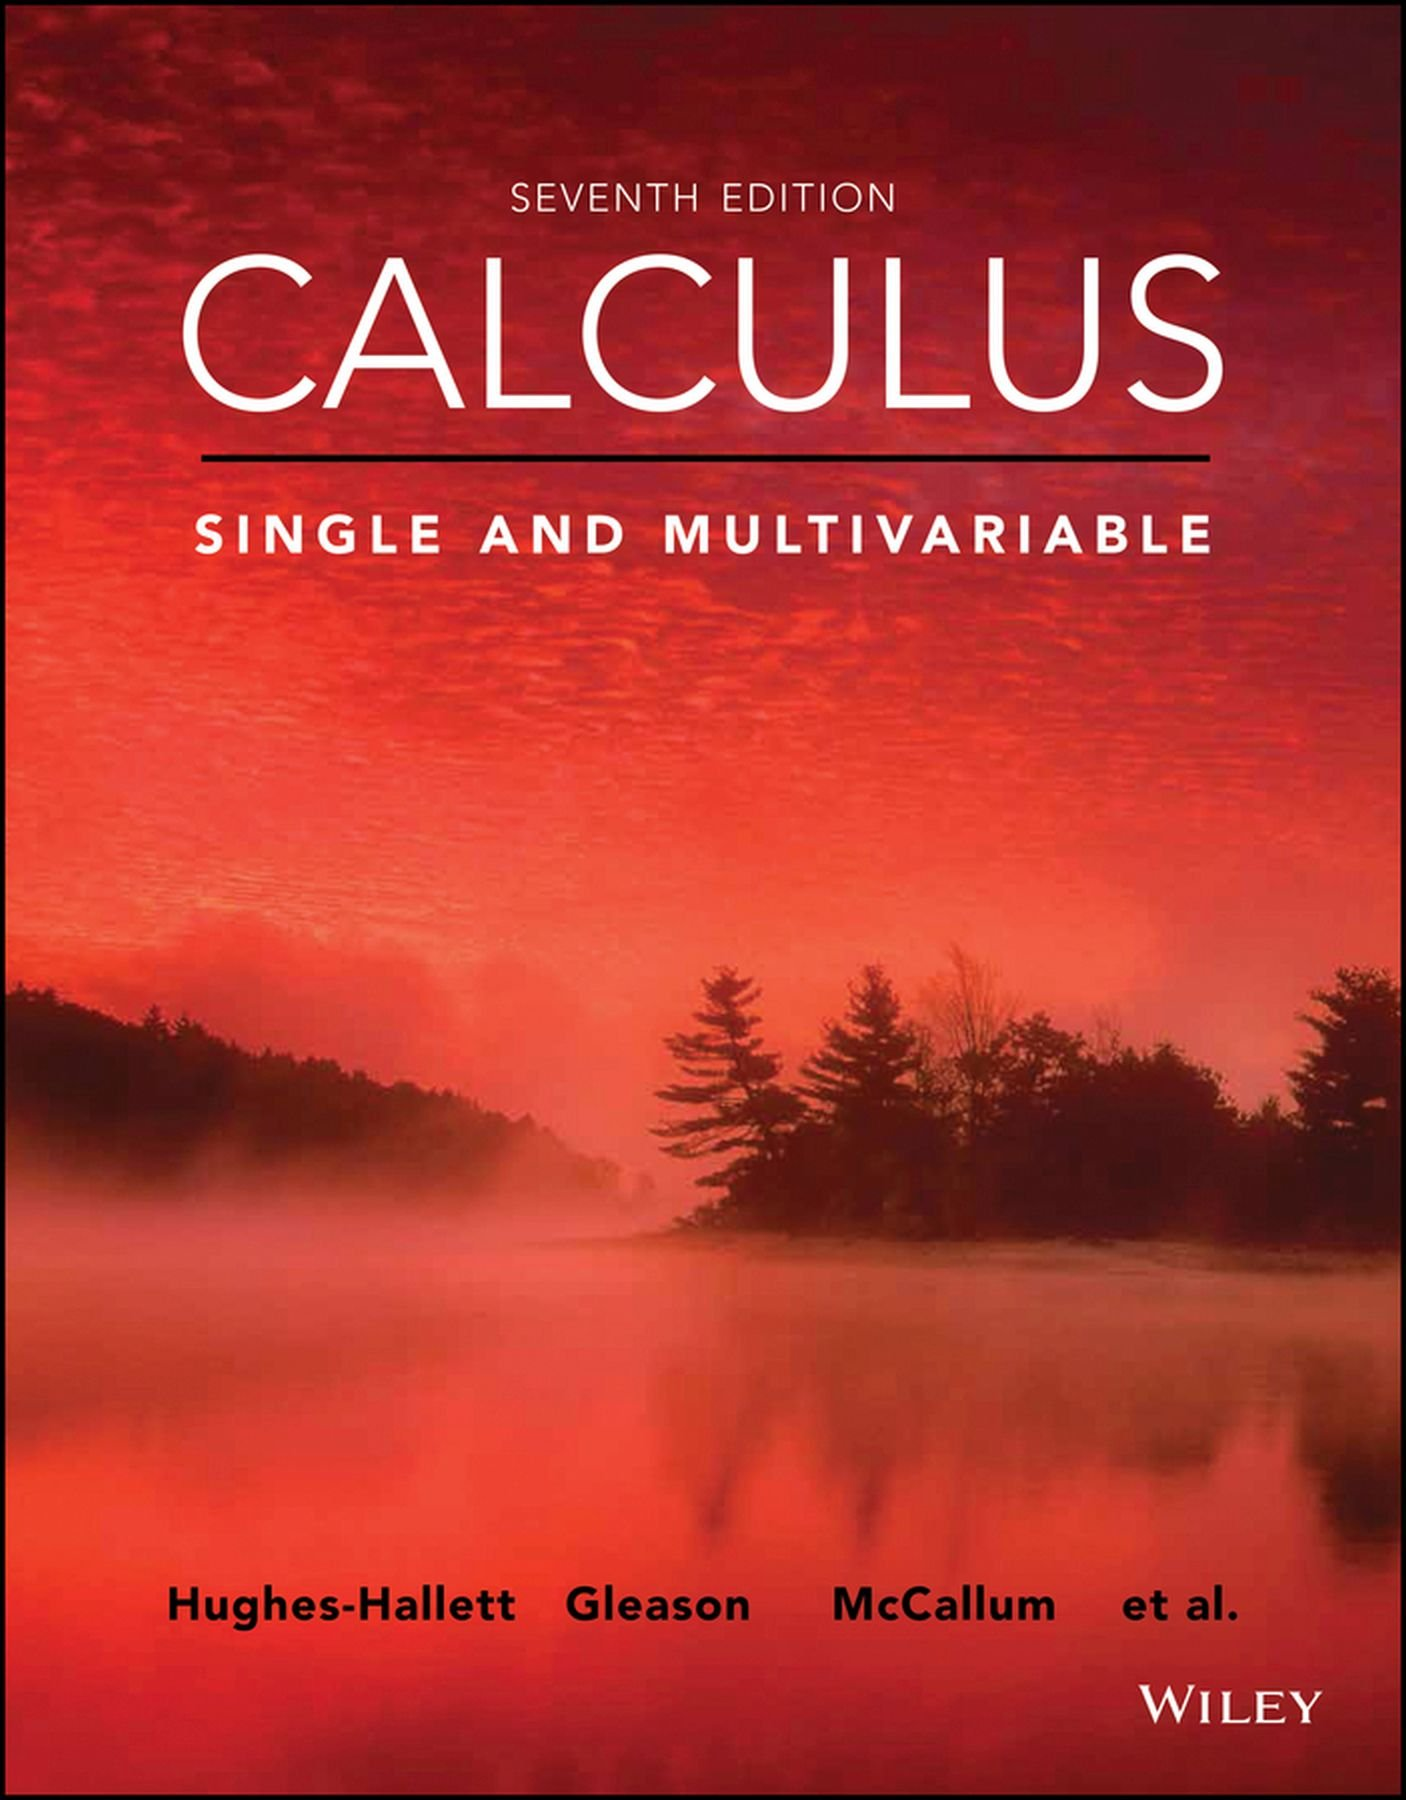 Calculus Single And Multivariable 7th Edition Pdf Free